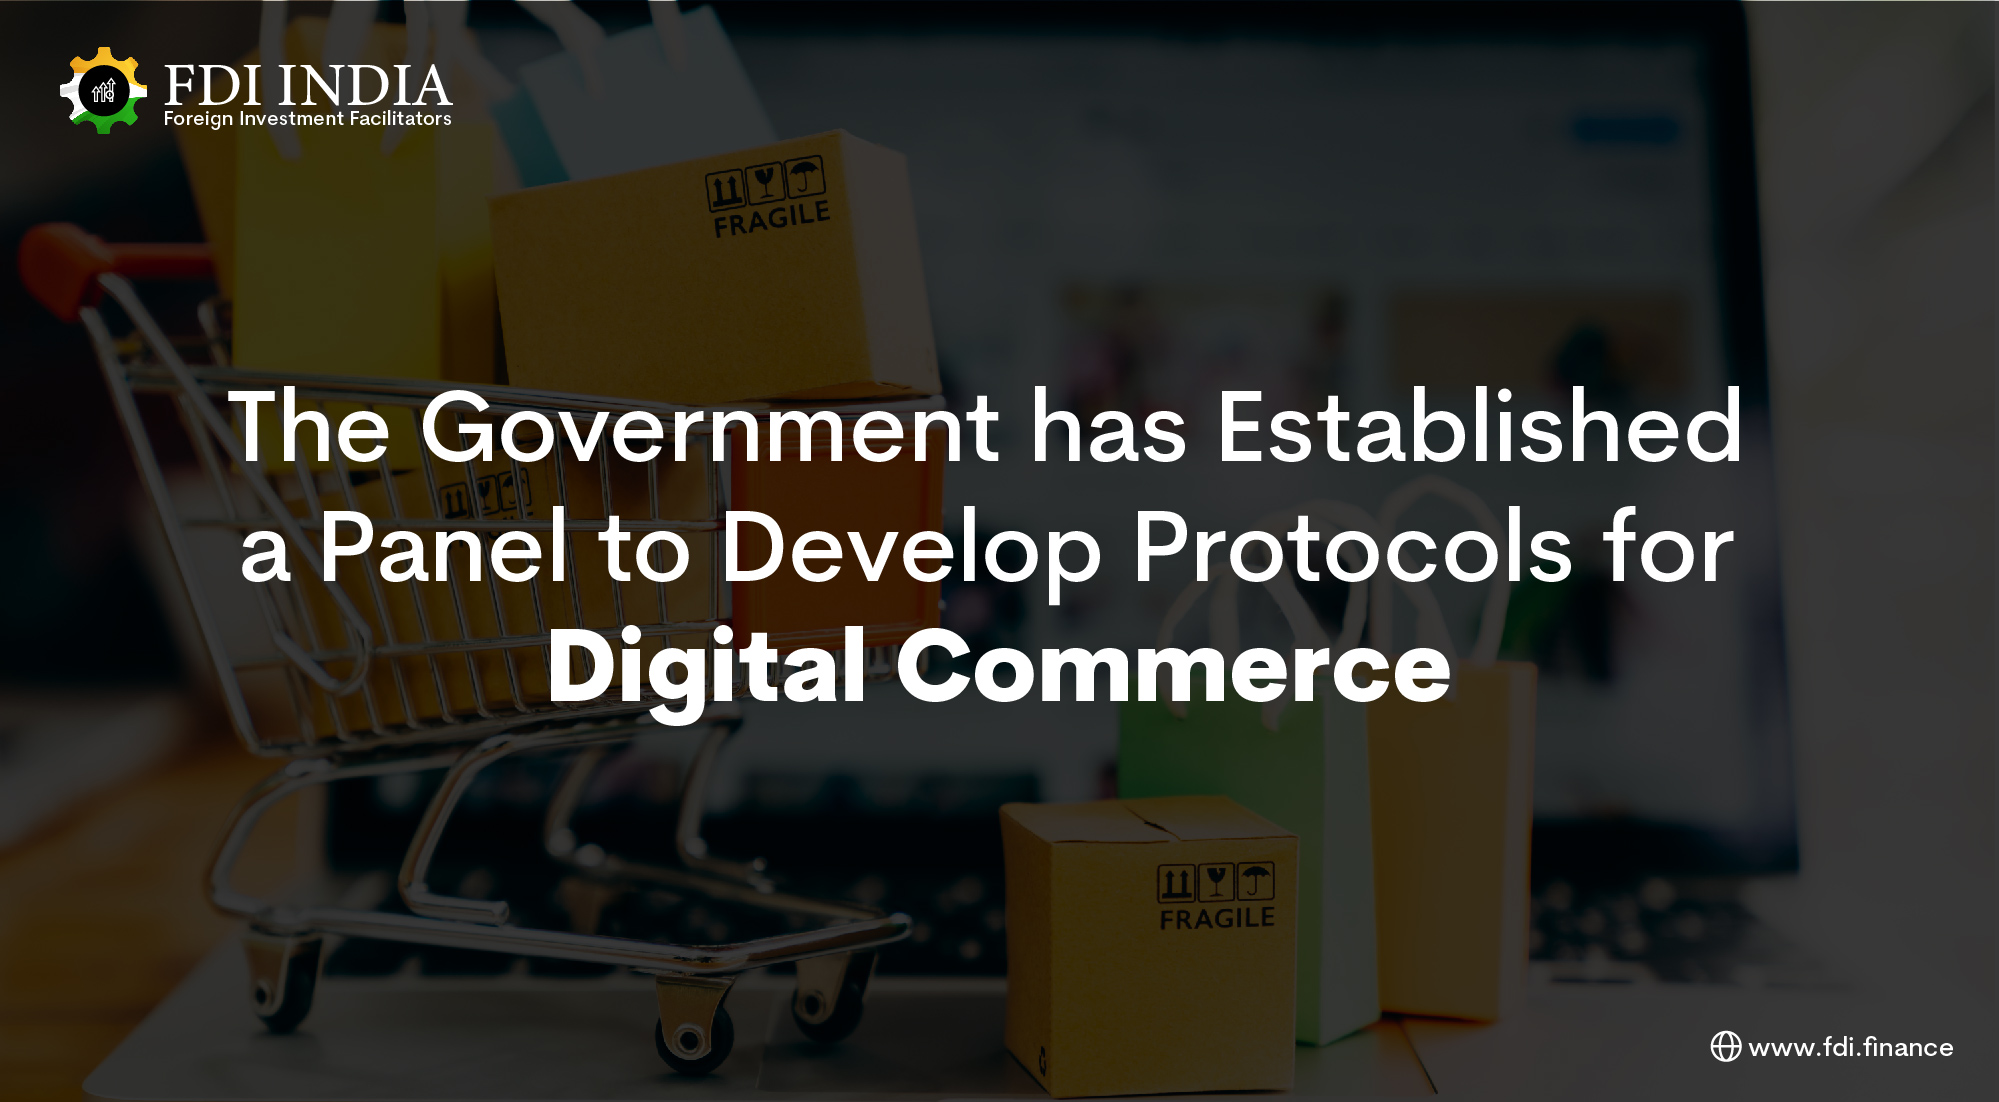 The Government has Established a Panel to Develop Protocols for Digital Commerce